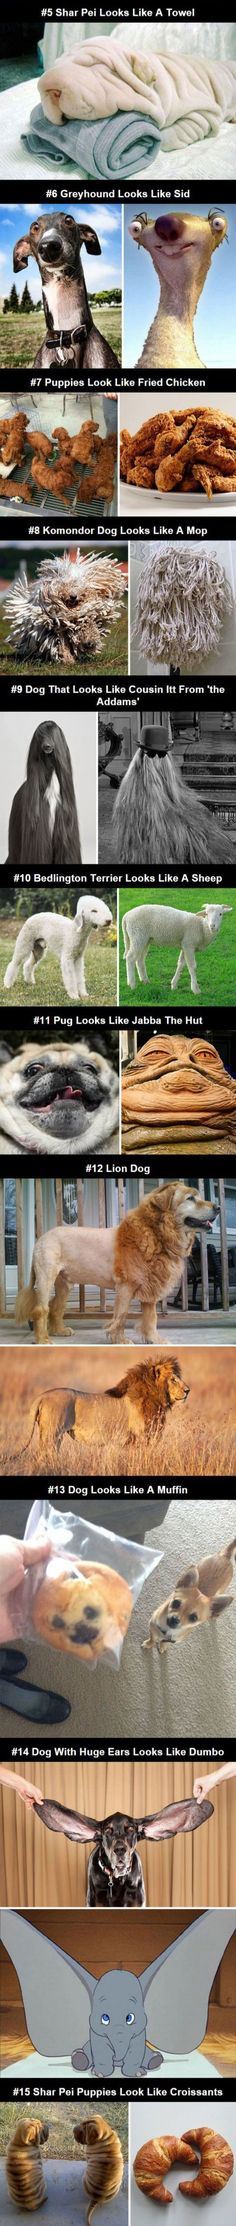 top 50 #funny humor Animals, Quotes and picture 2015 #compartirvideos #imagenesdivertidas                                                                                                                                                      More